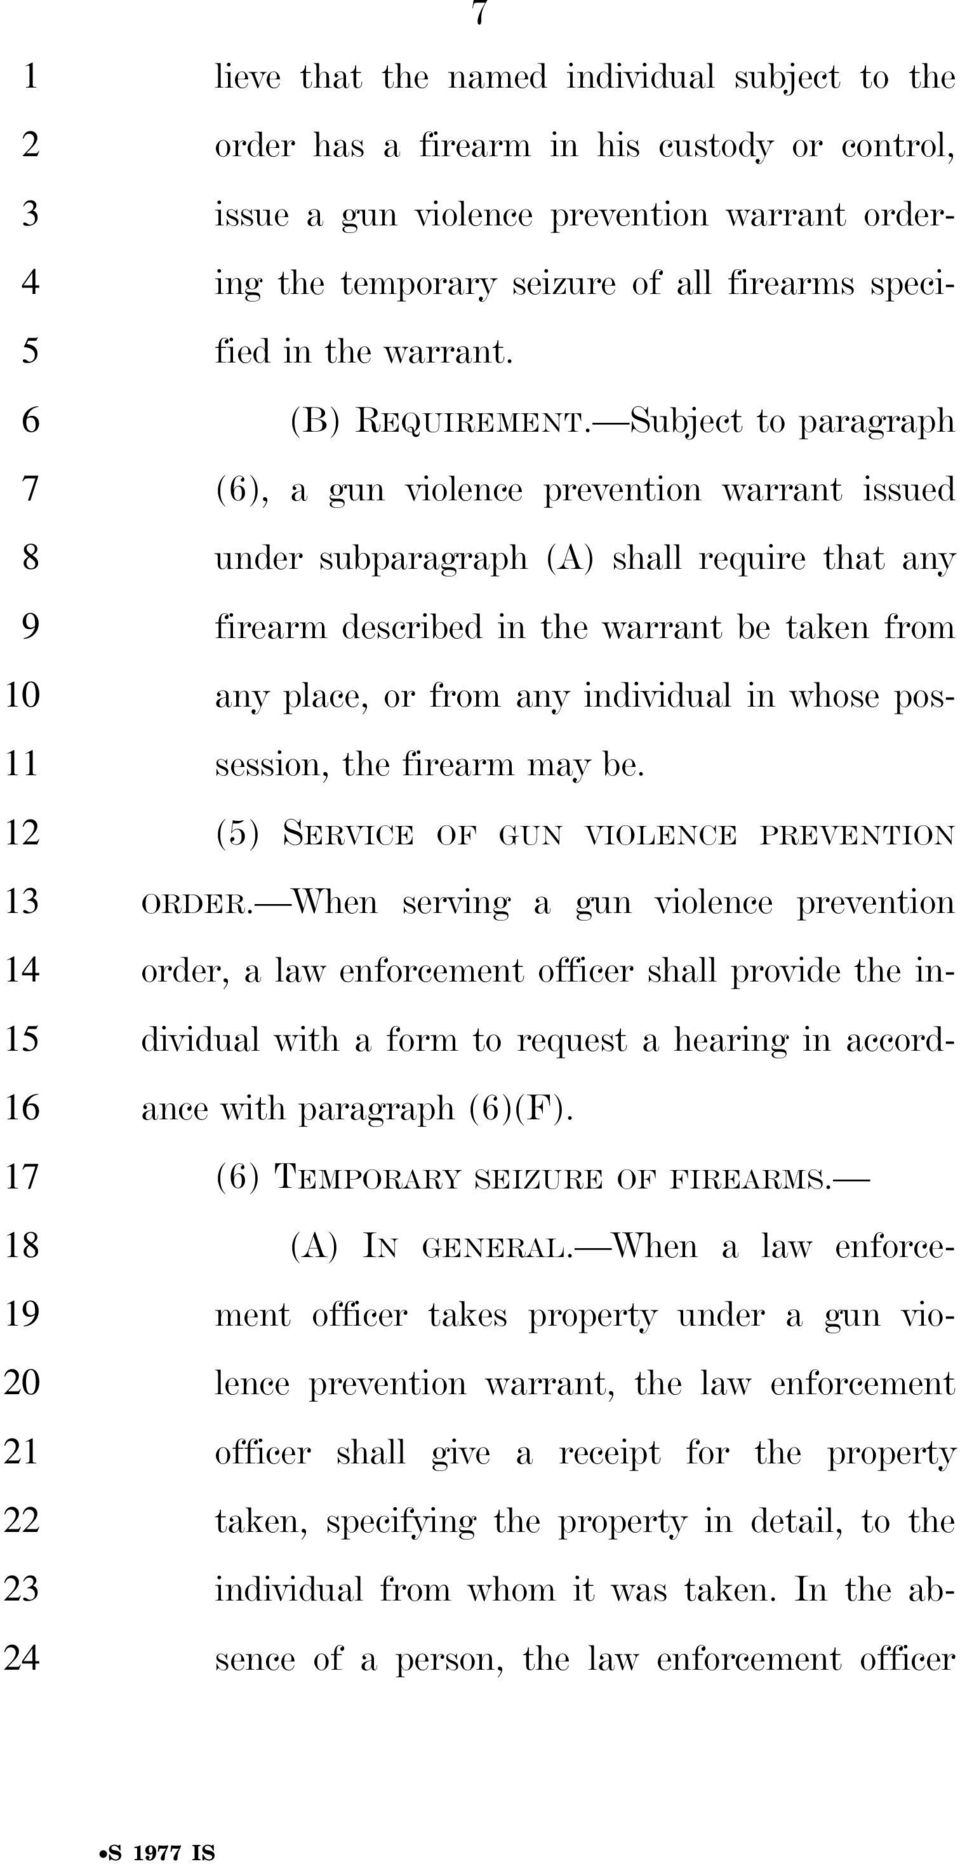 Subject to paragraph (), a gun violence prevention warrant issued under subparagraph (A) shall require that any firearm described in the warrant be taken from any place, or from any individual in